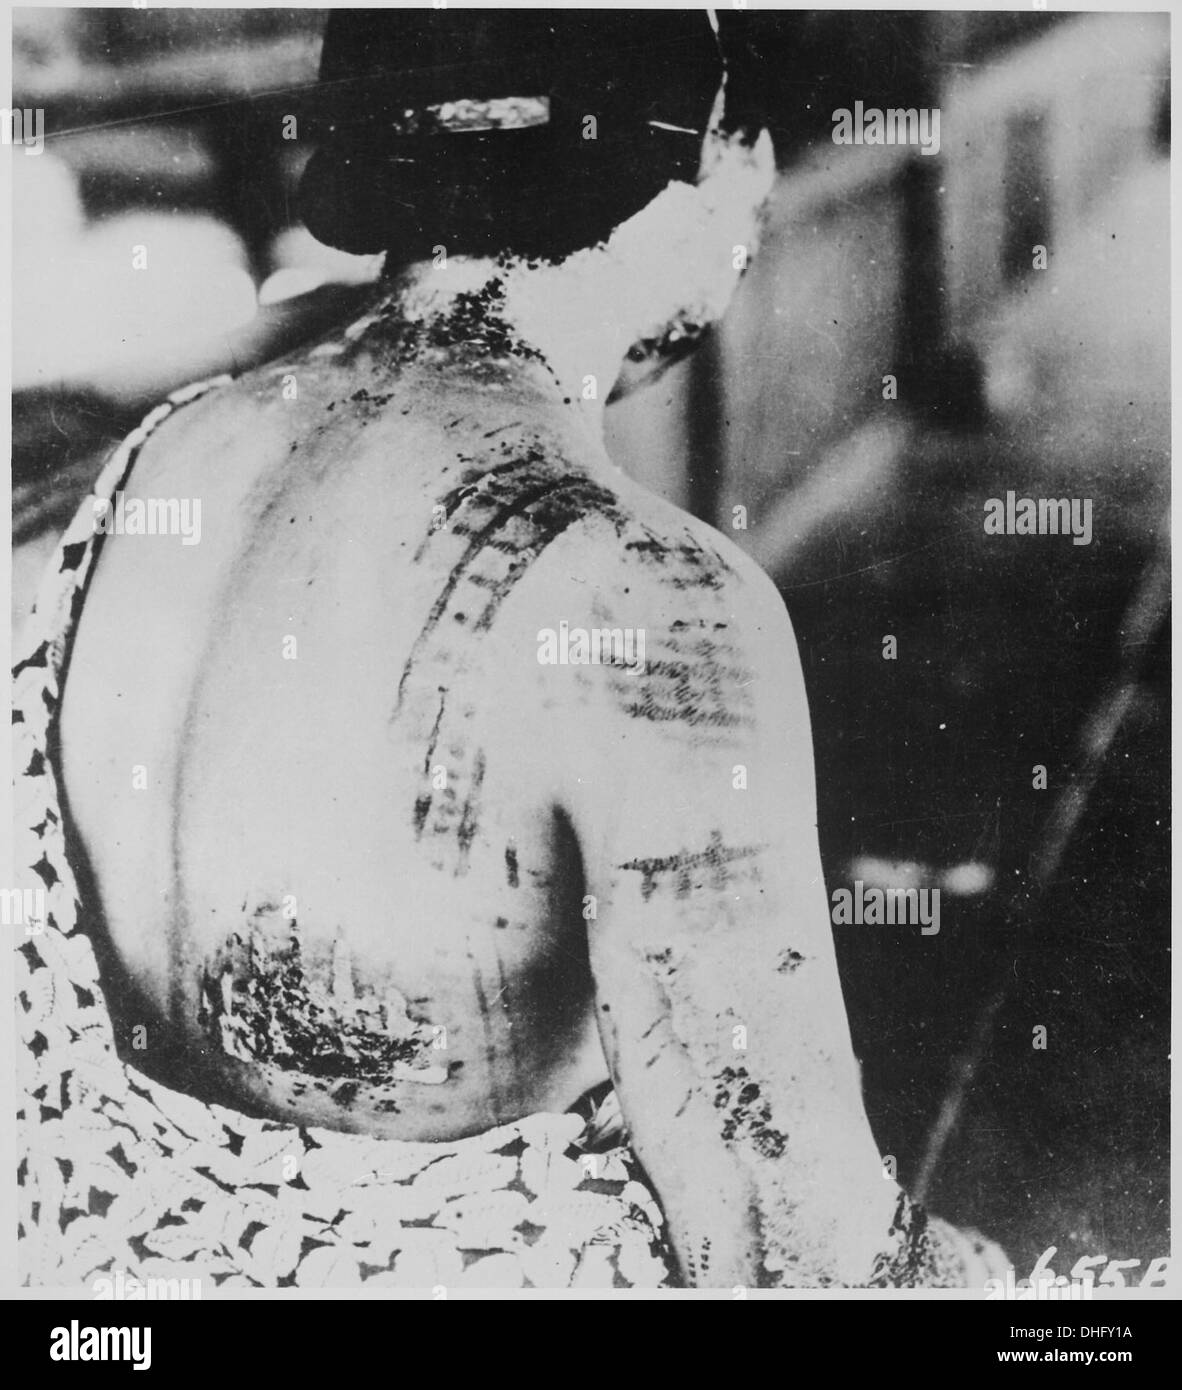 The patient's skin is burned in a pattern corresponding to the dark portions of a kimono worn at the time of the explos 519685 - Stock Image